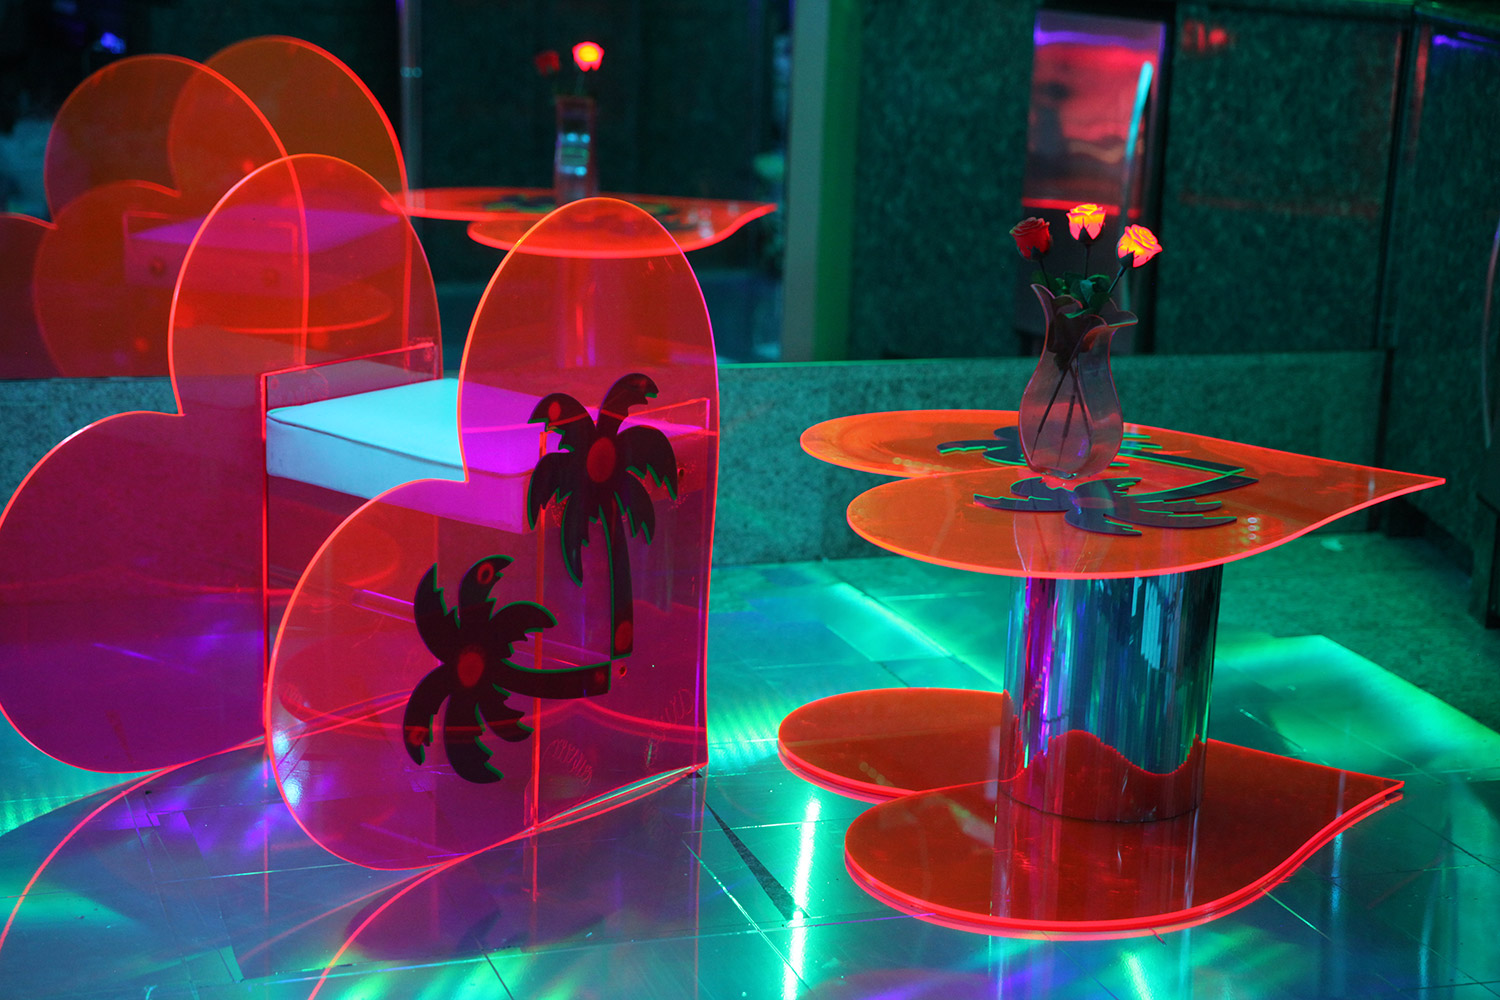 Marina Fini and Signe Pierce, Motelscape - plexiglass furniture